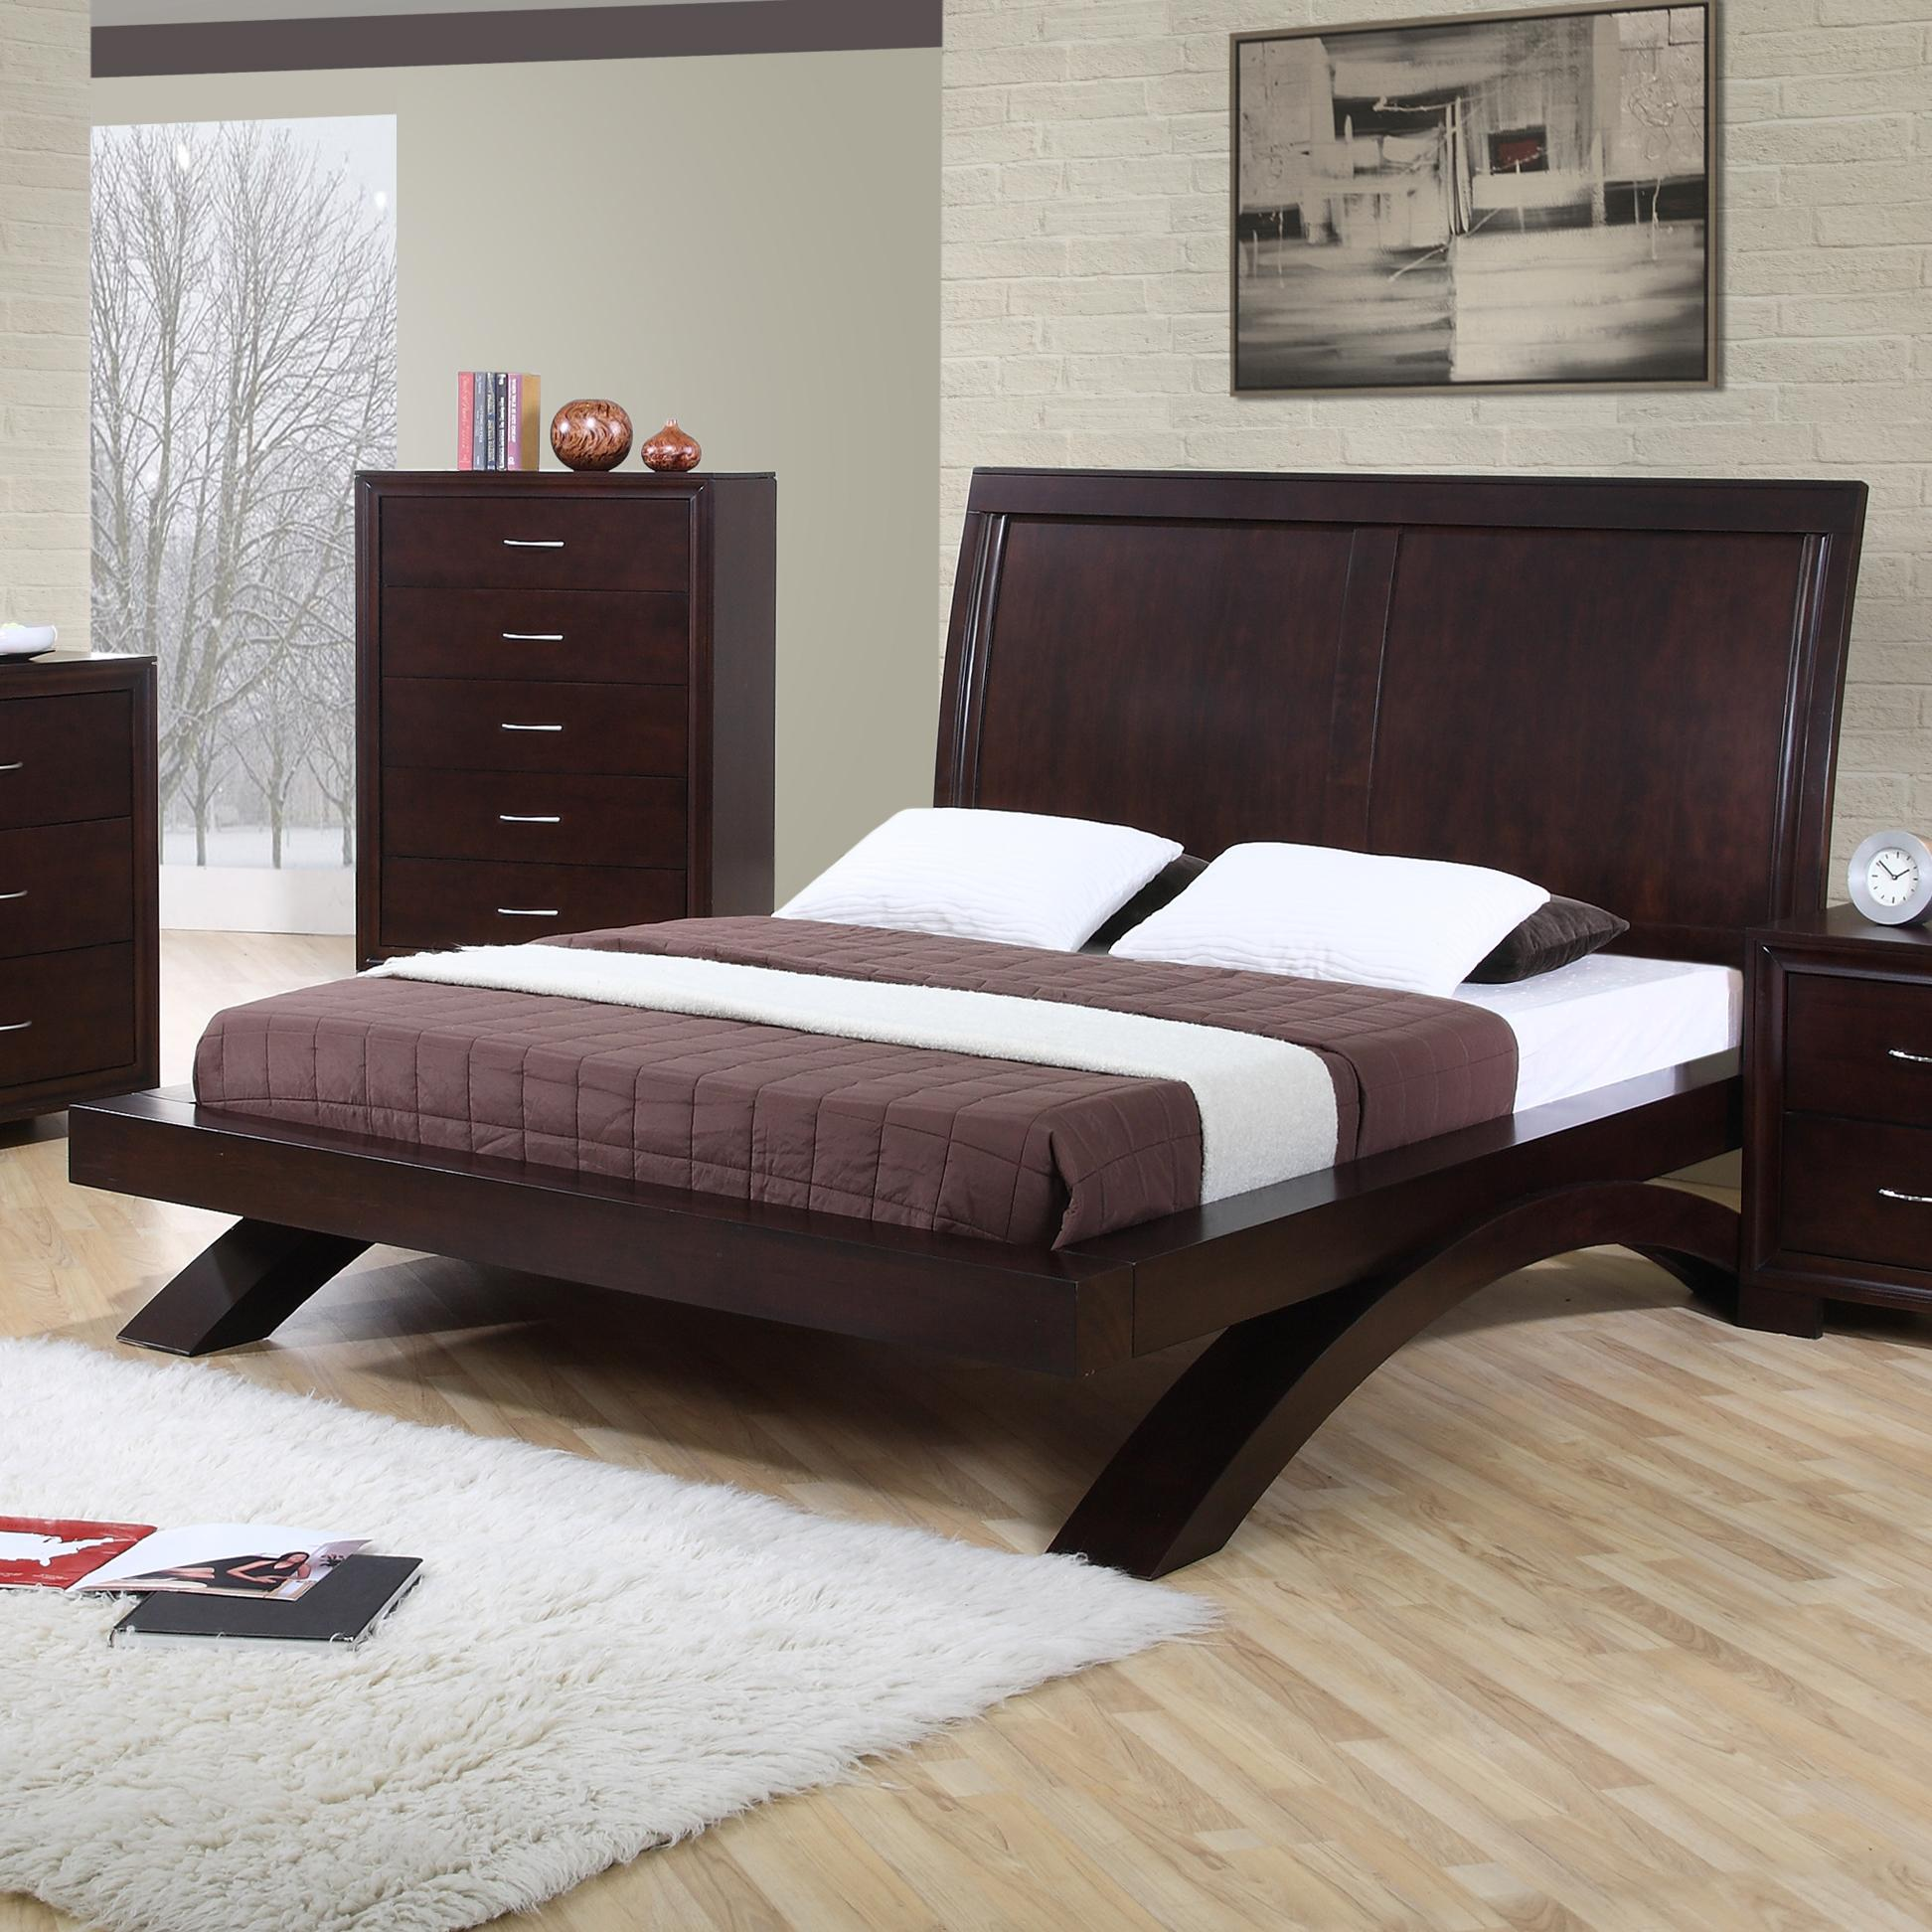 Furniture Bedroom Beds King Platform